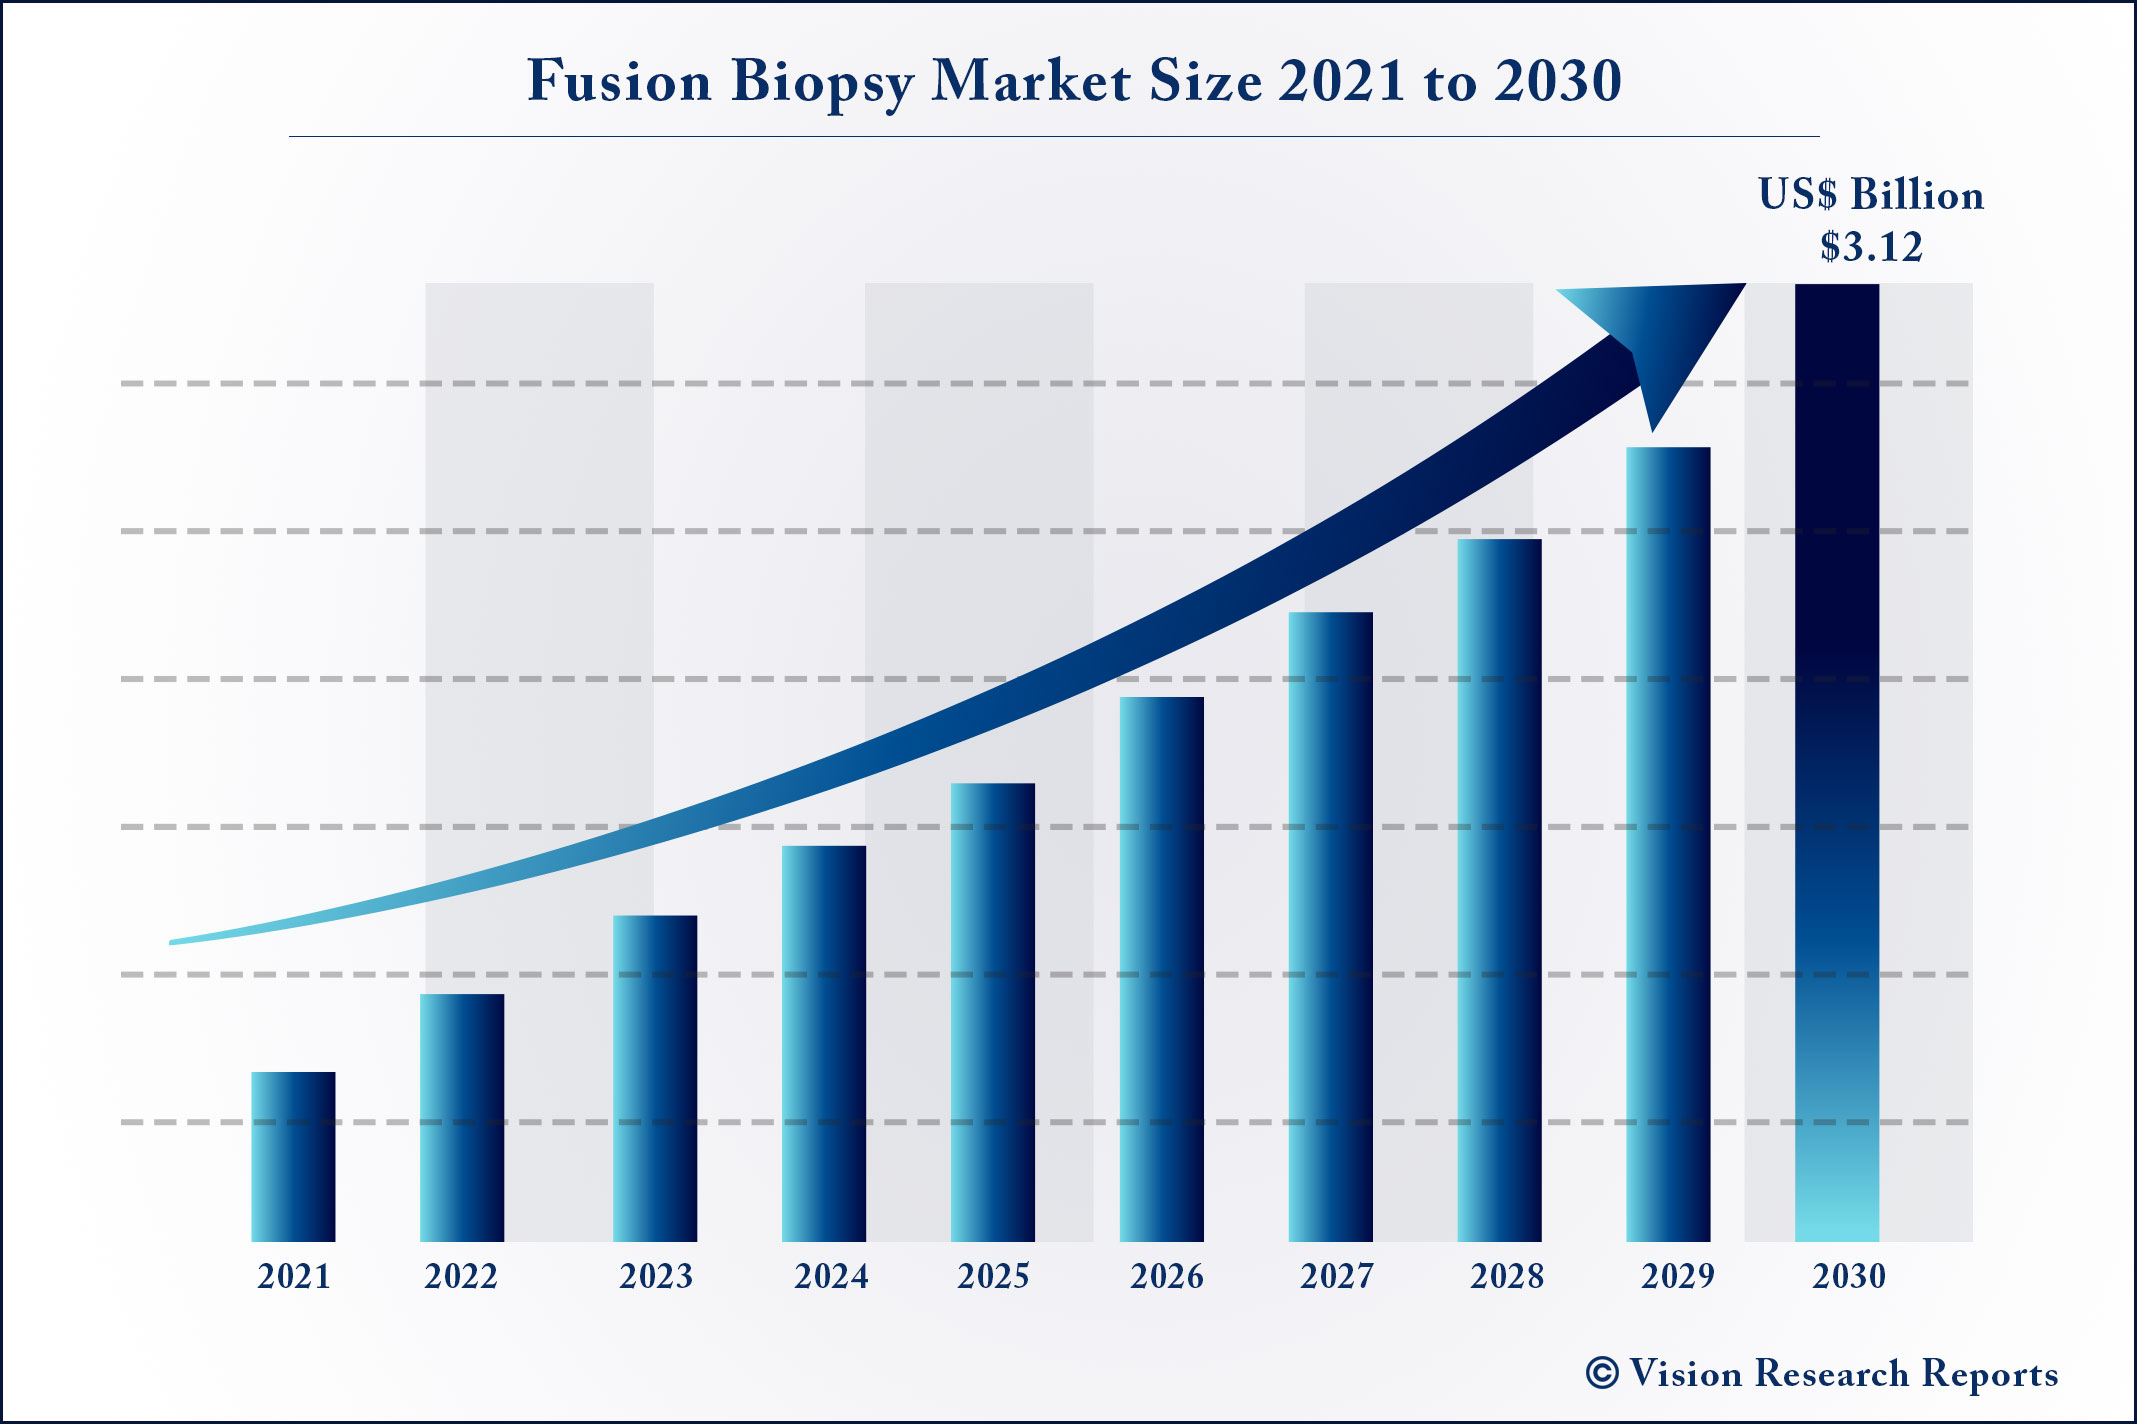 Fusion Biopsy Market Size 2021 to 2030